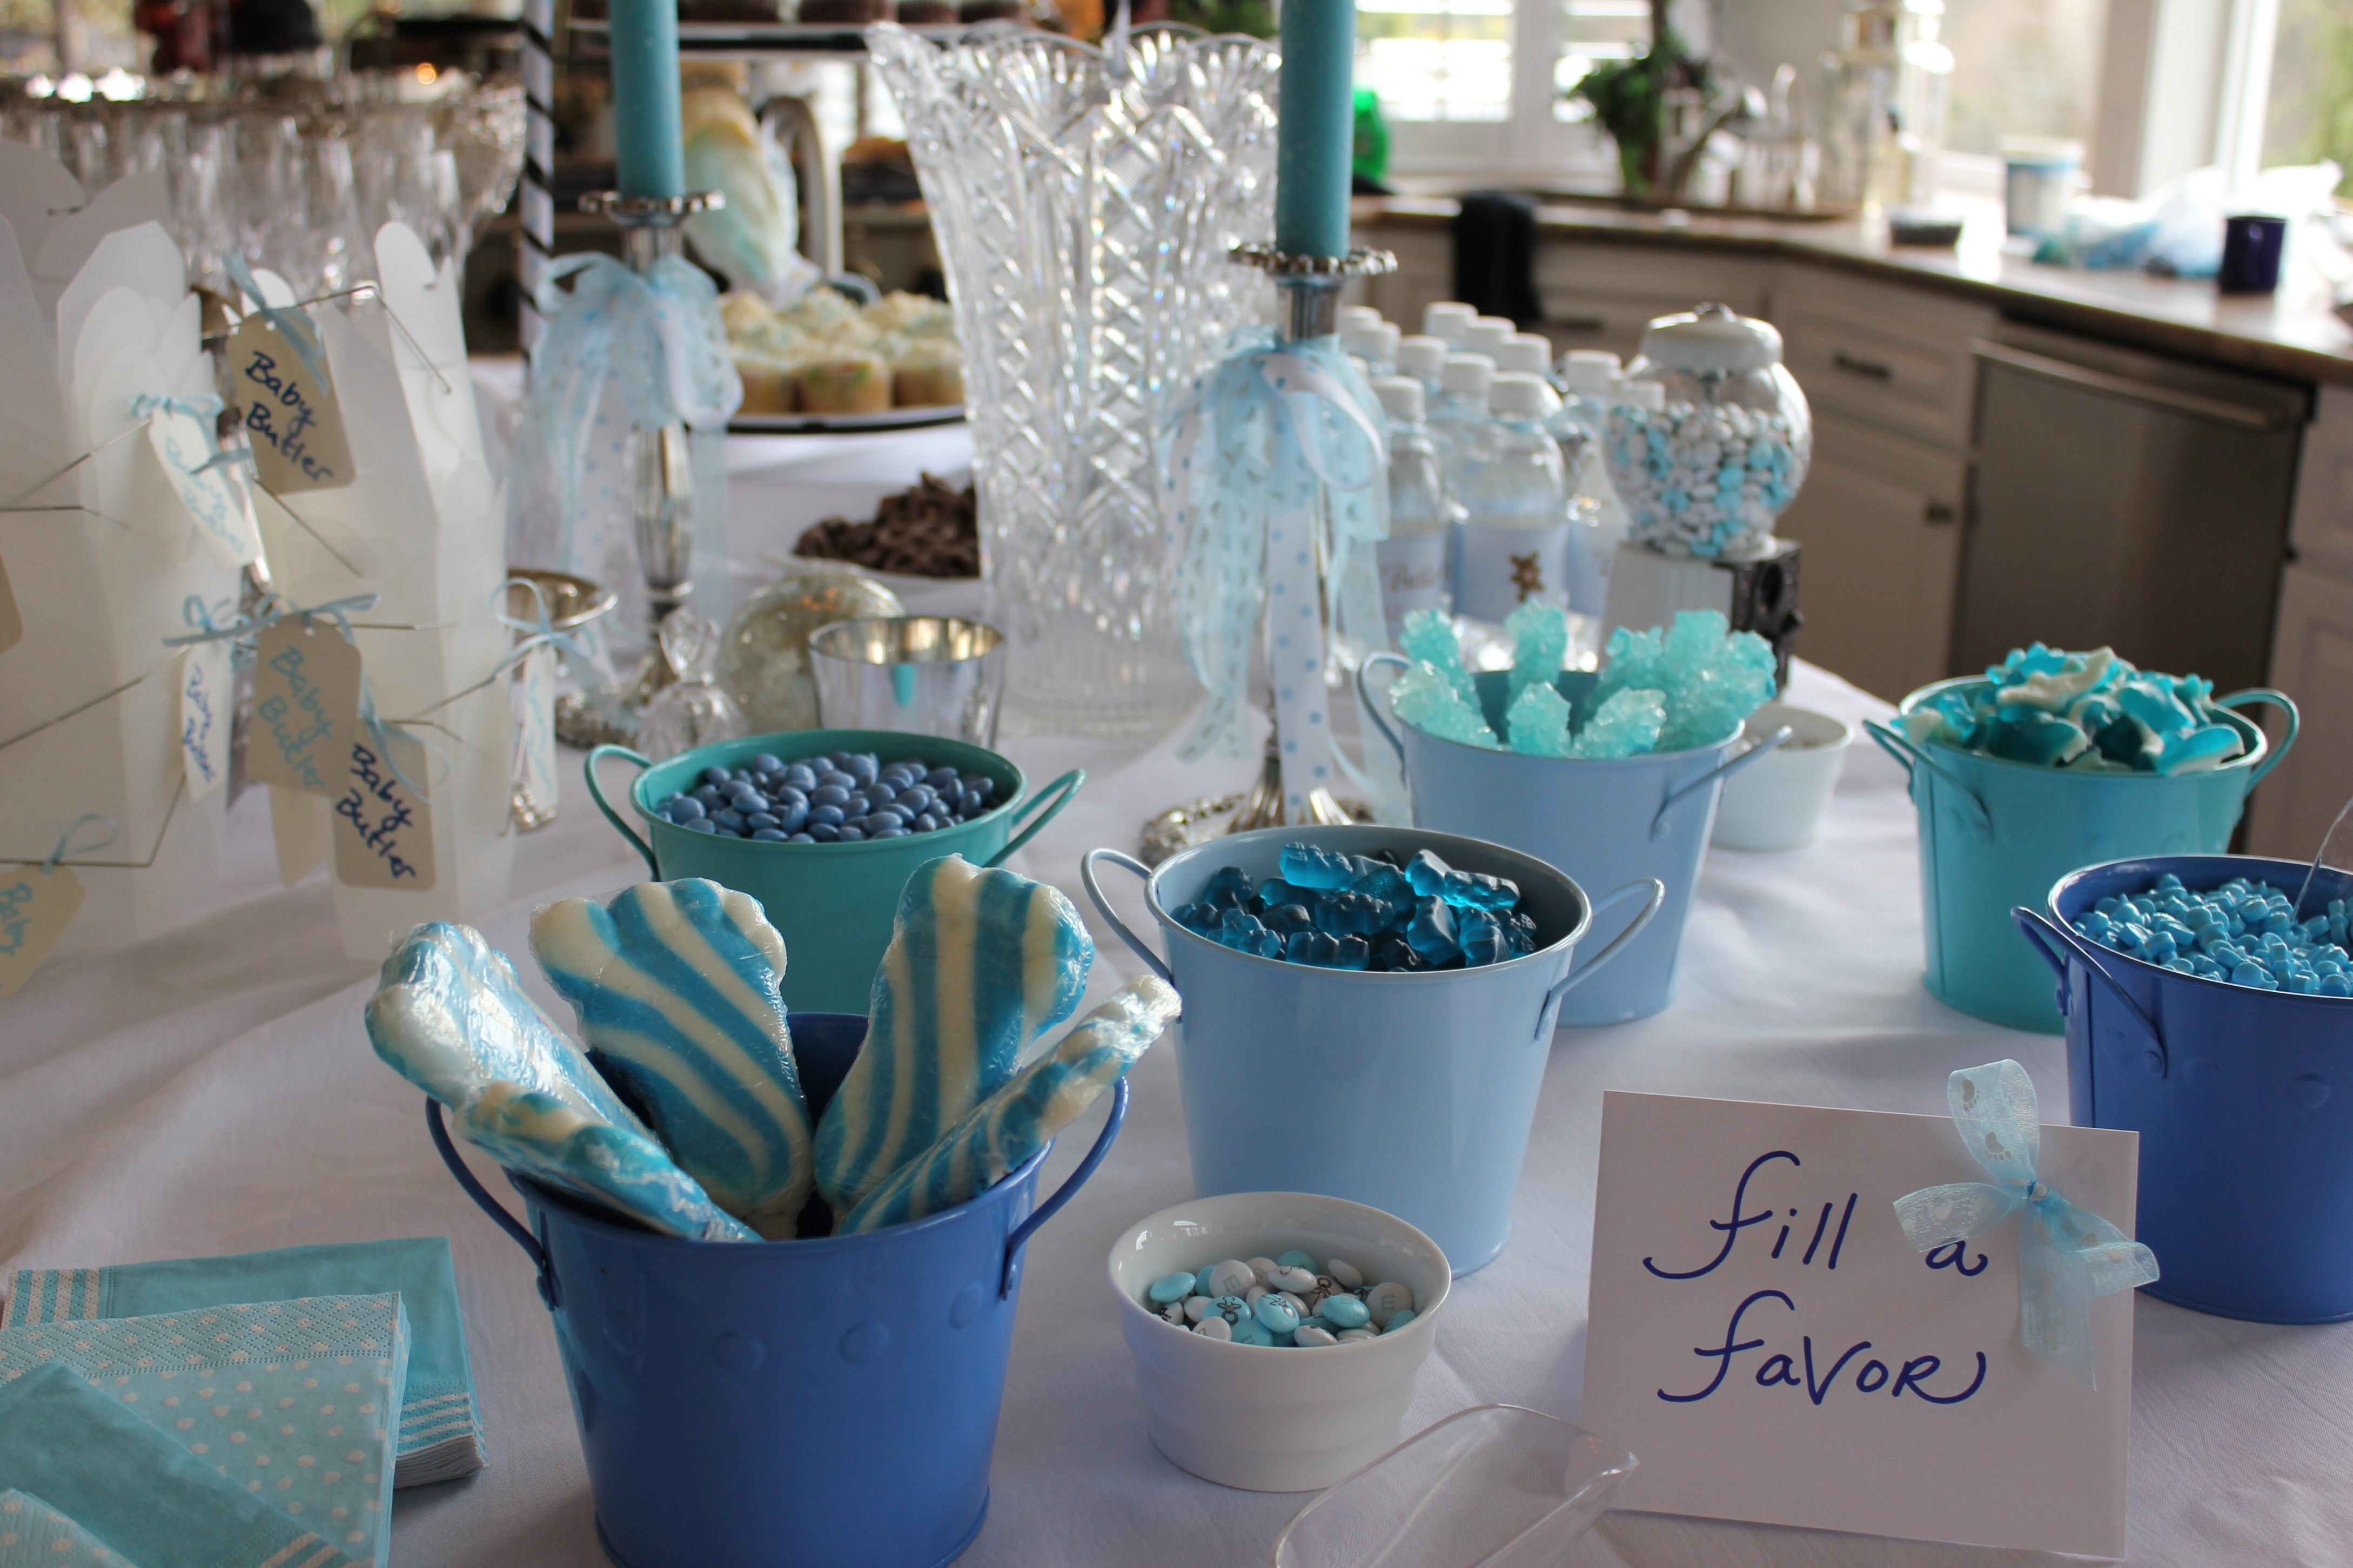 10 Most Popular Baby Shower Table Centerpiece Ideas baby shower table decorations bestedieetplan 2021